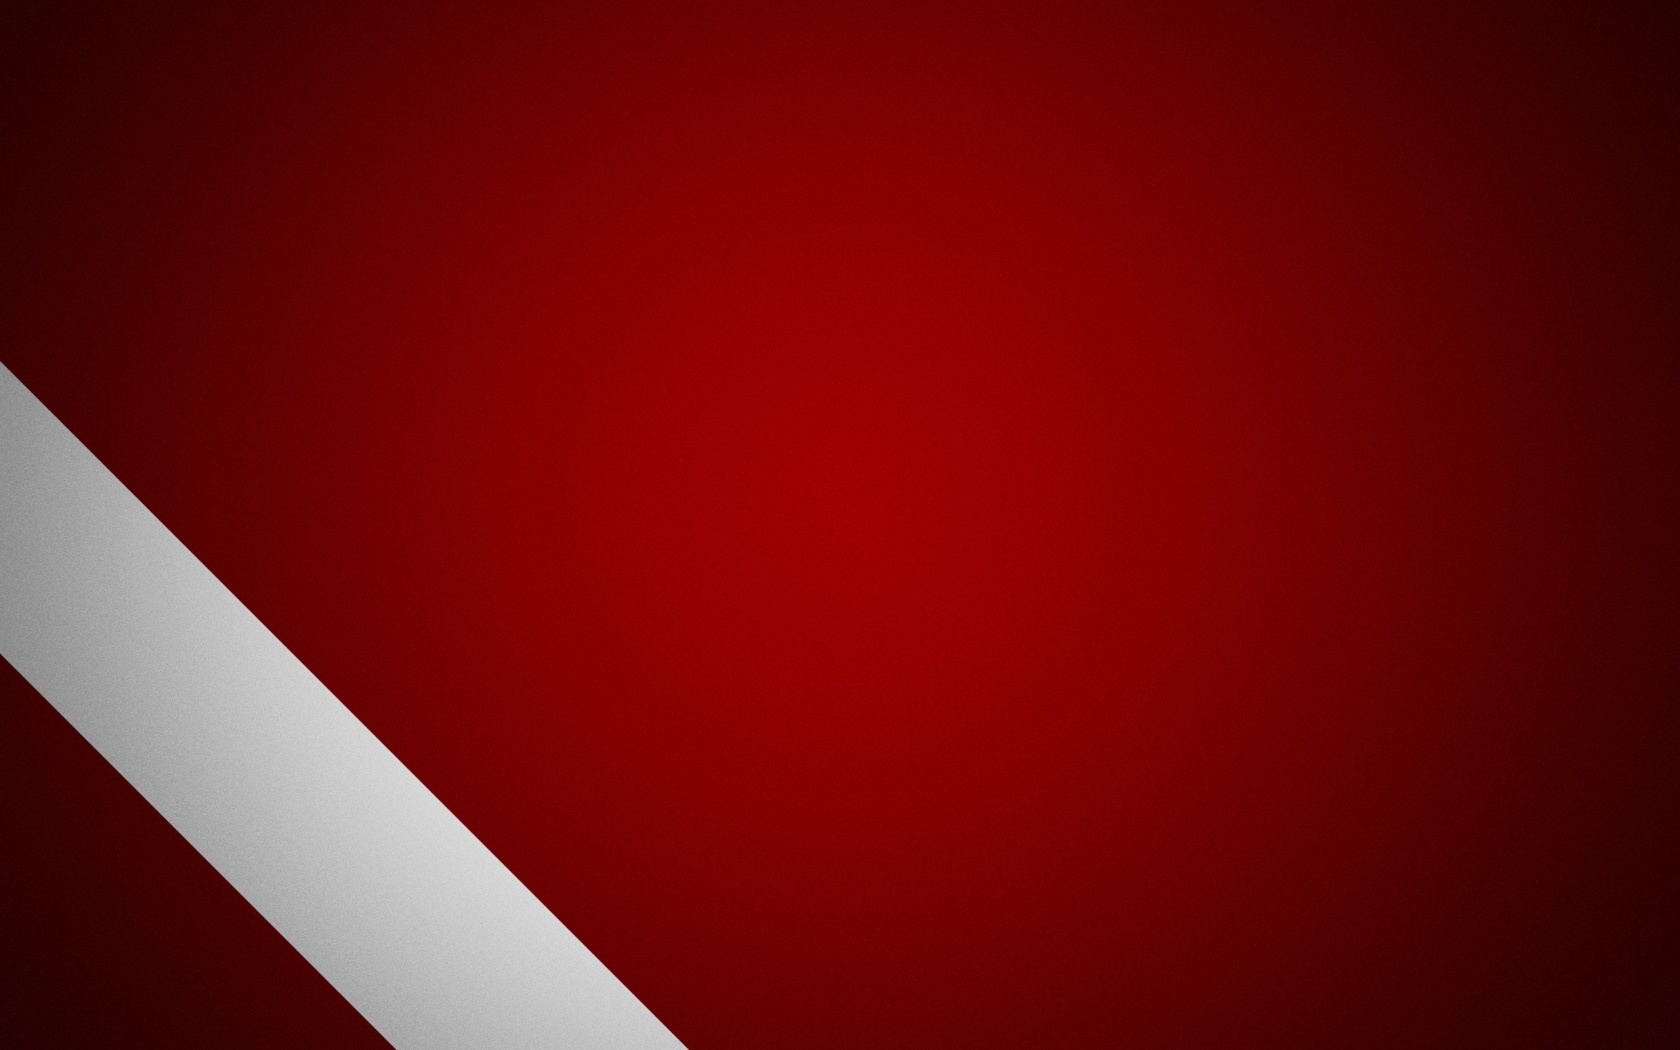 red and white background powerpoint backgrounds for free powerpoint templates seek gif